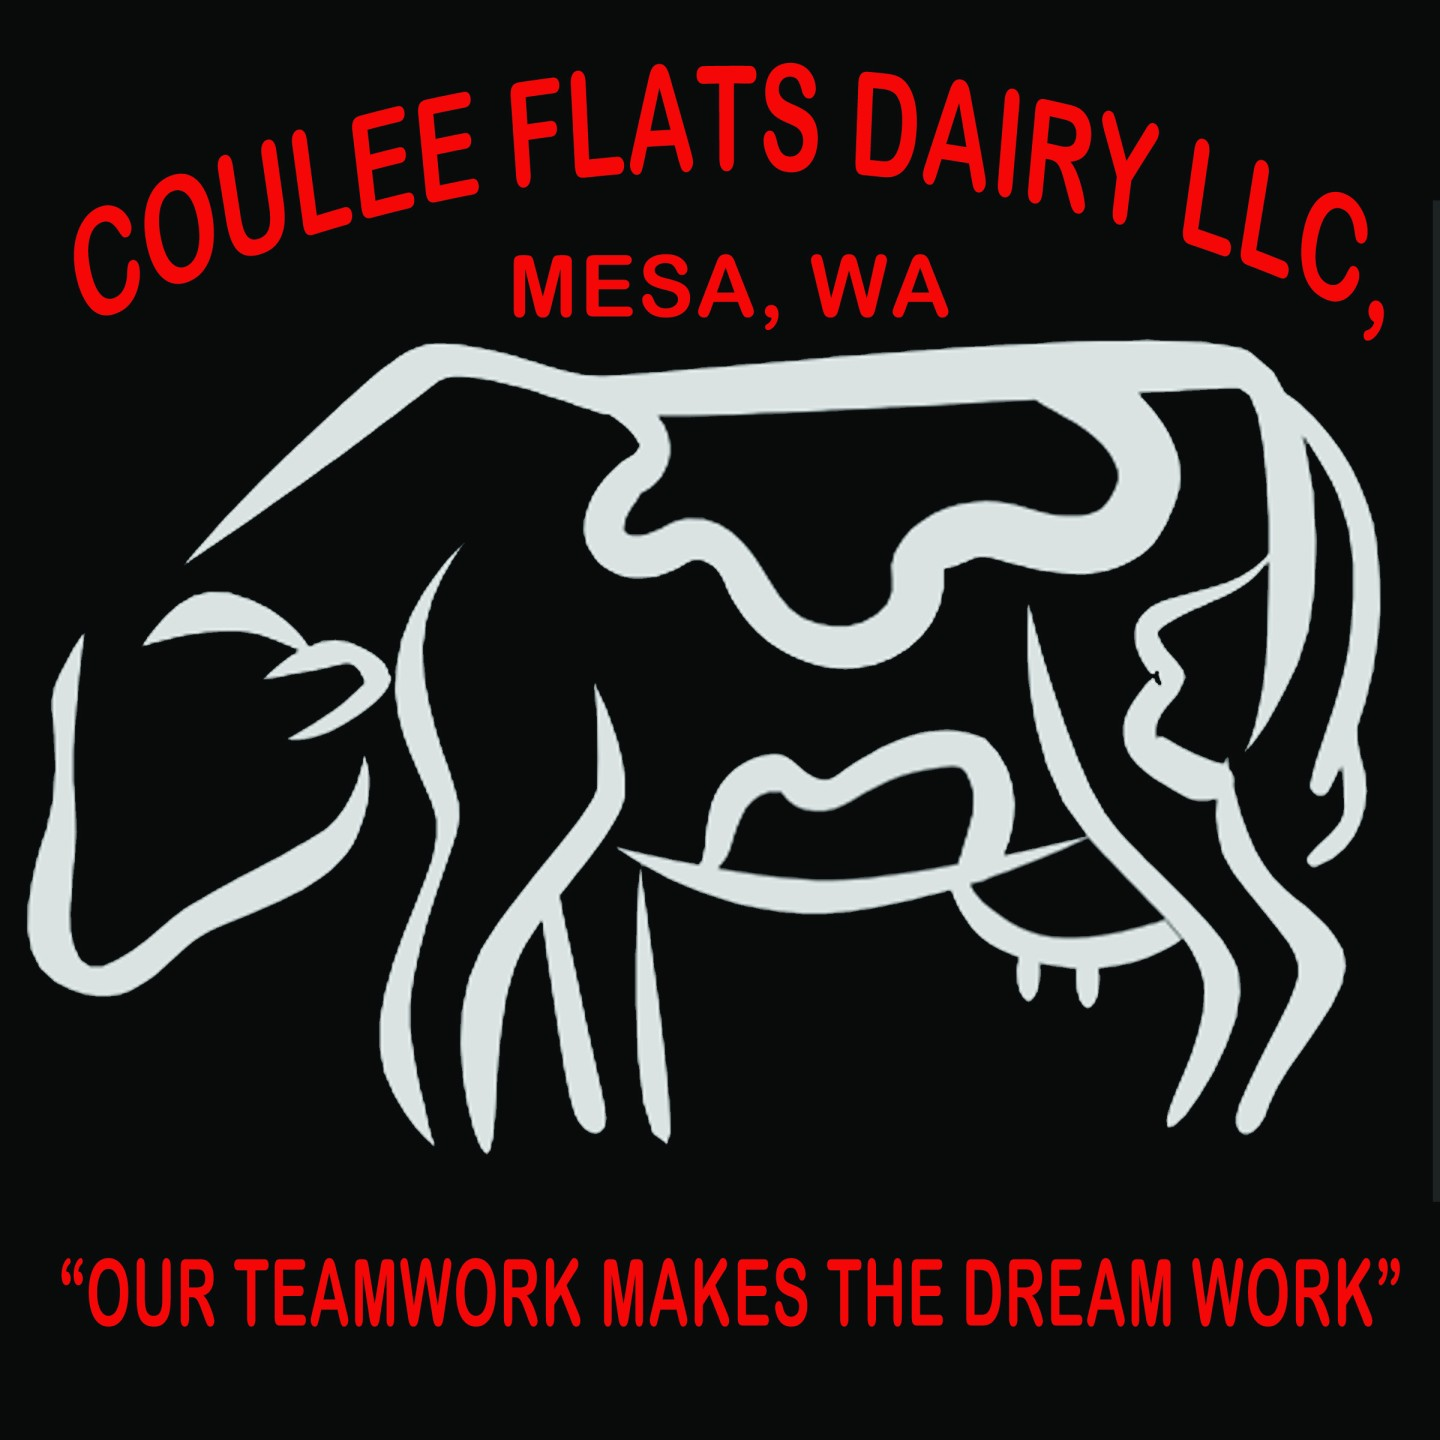 Coulee Flats Dairy